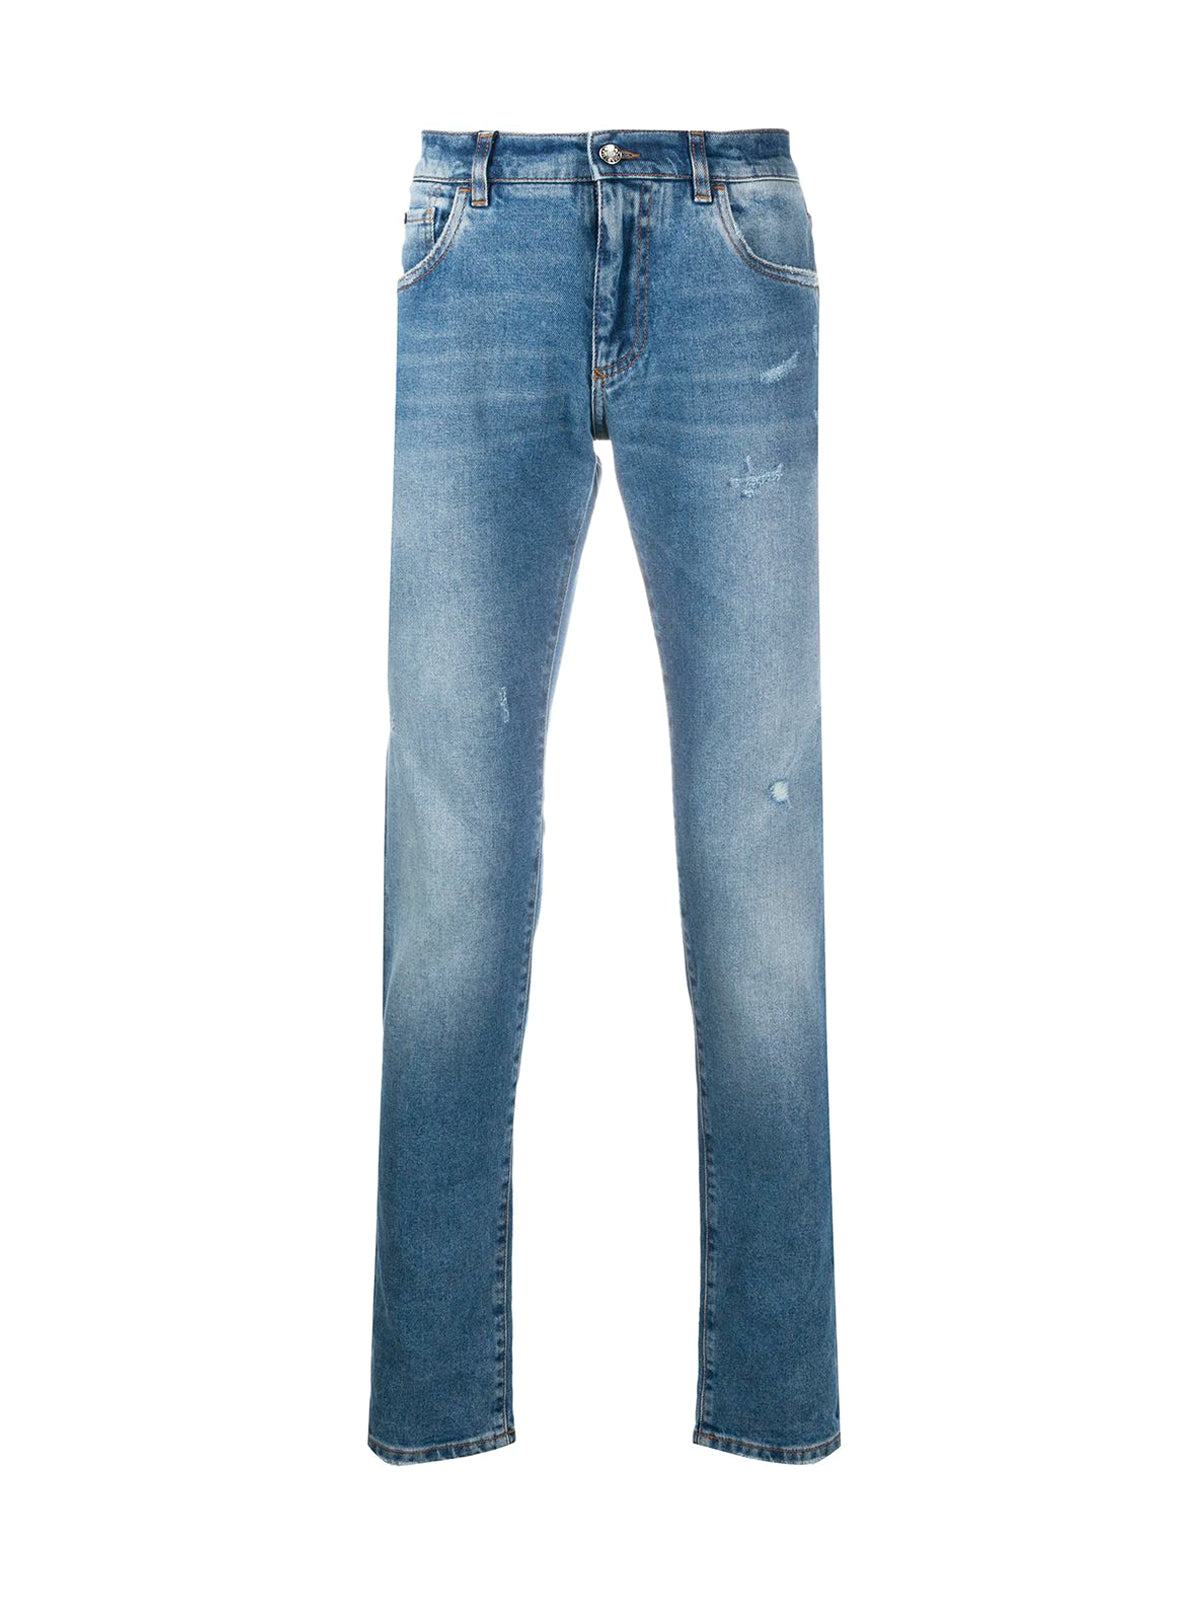 Slim jeans with washed effect